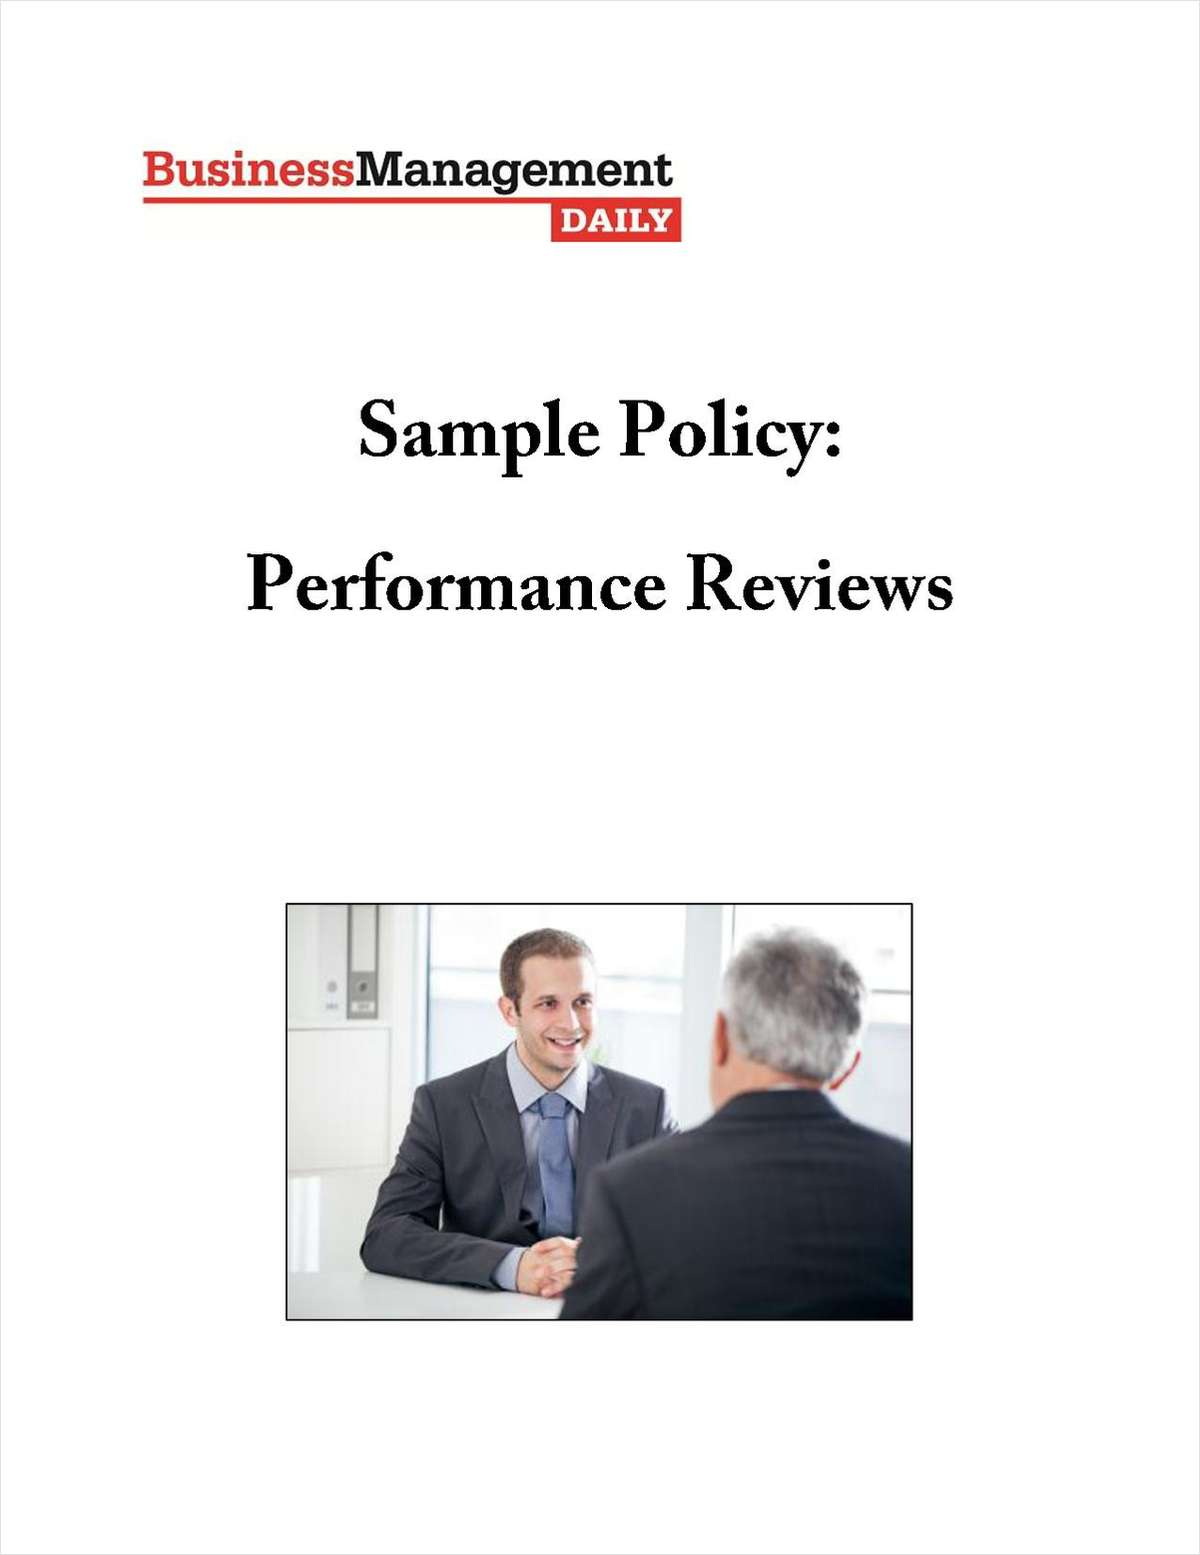 Performance Review Sample Policy